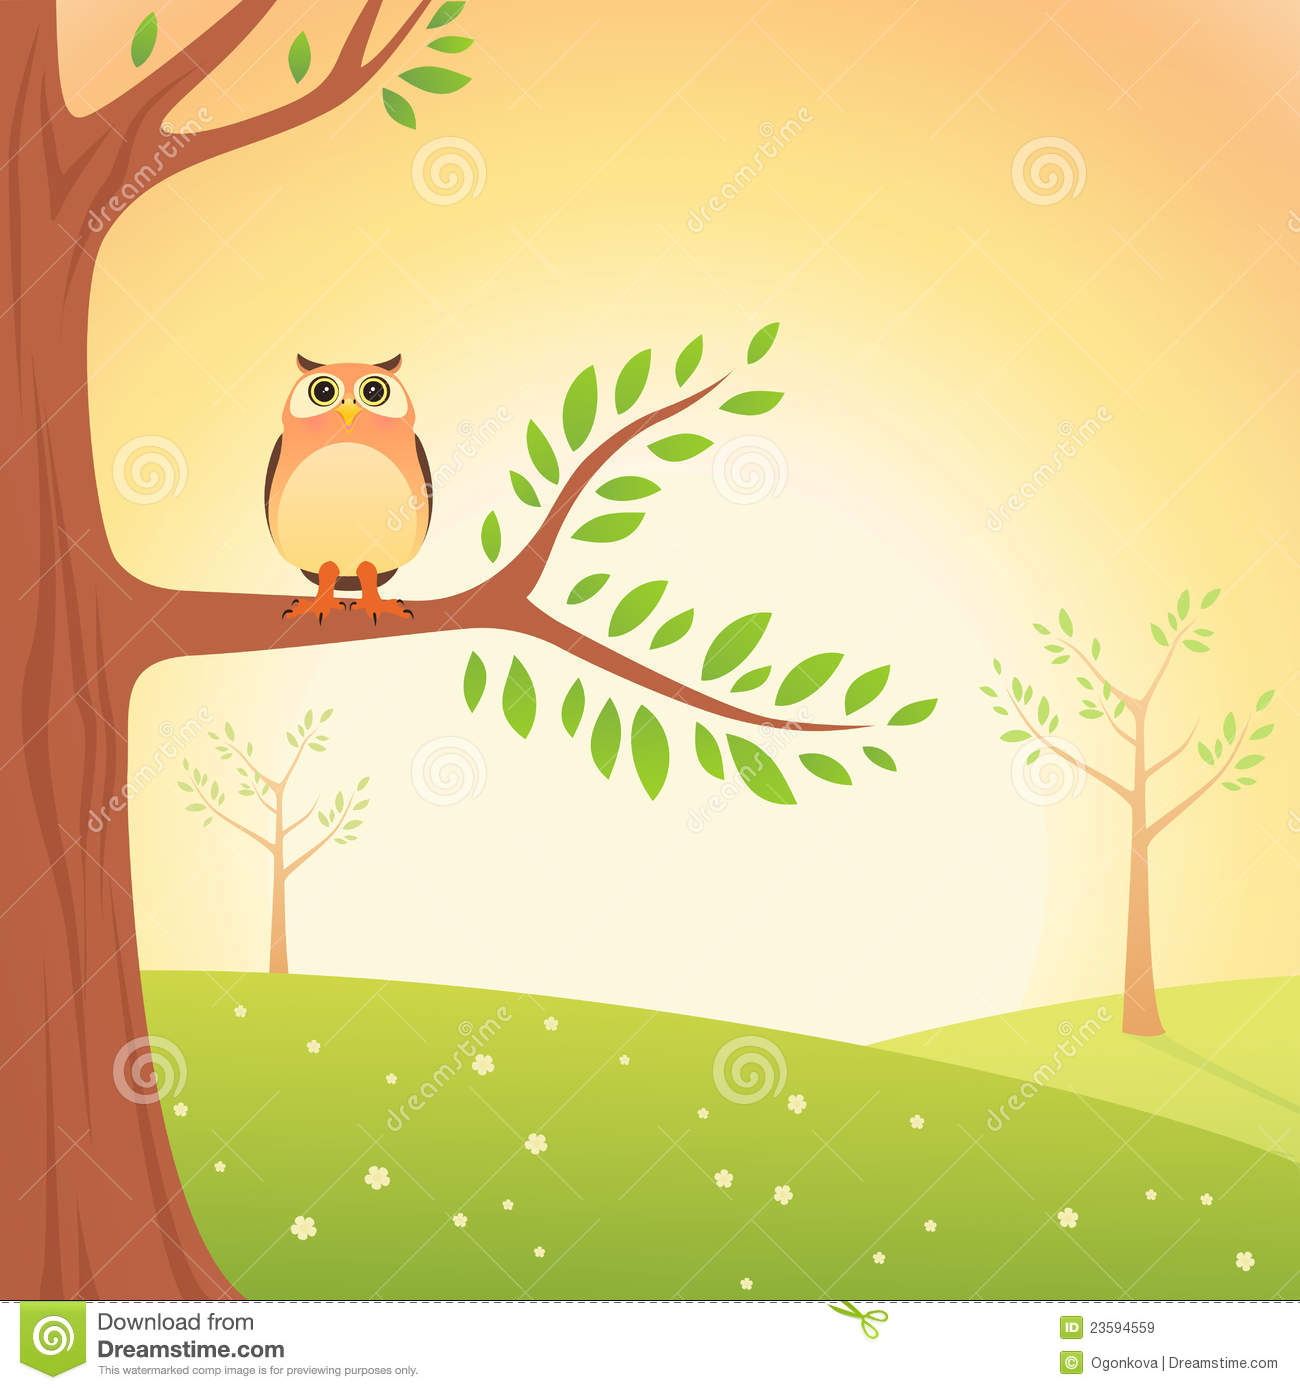 Owl Cartoon In Tree